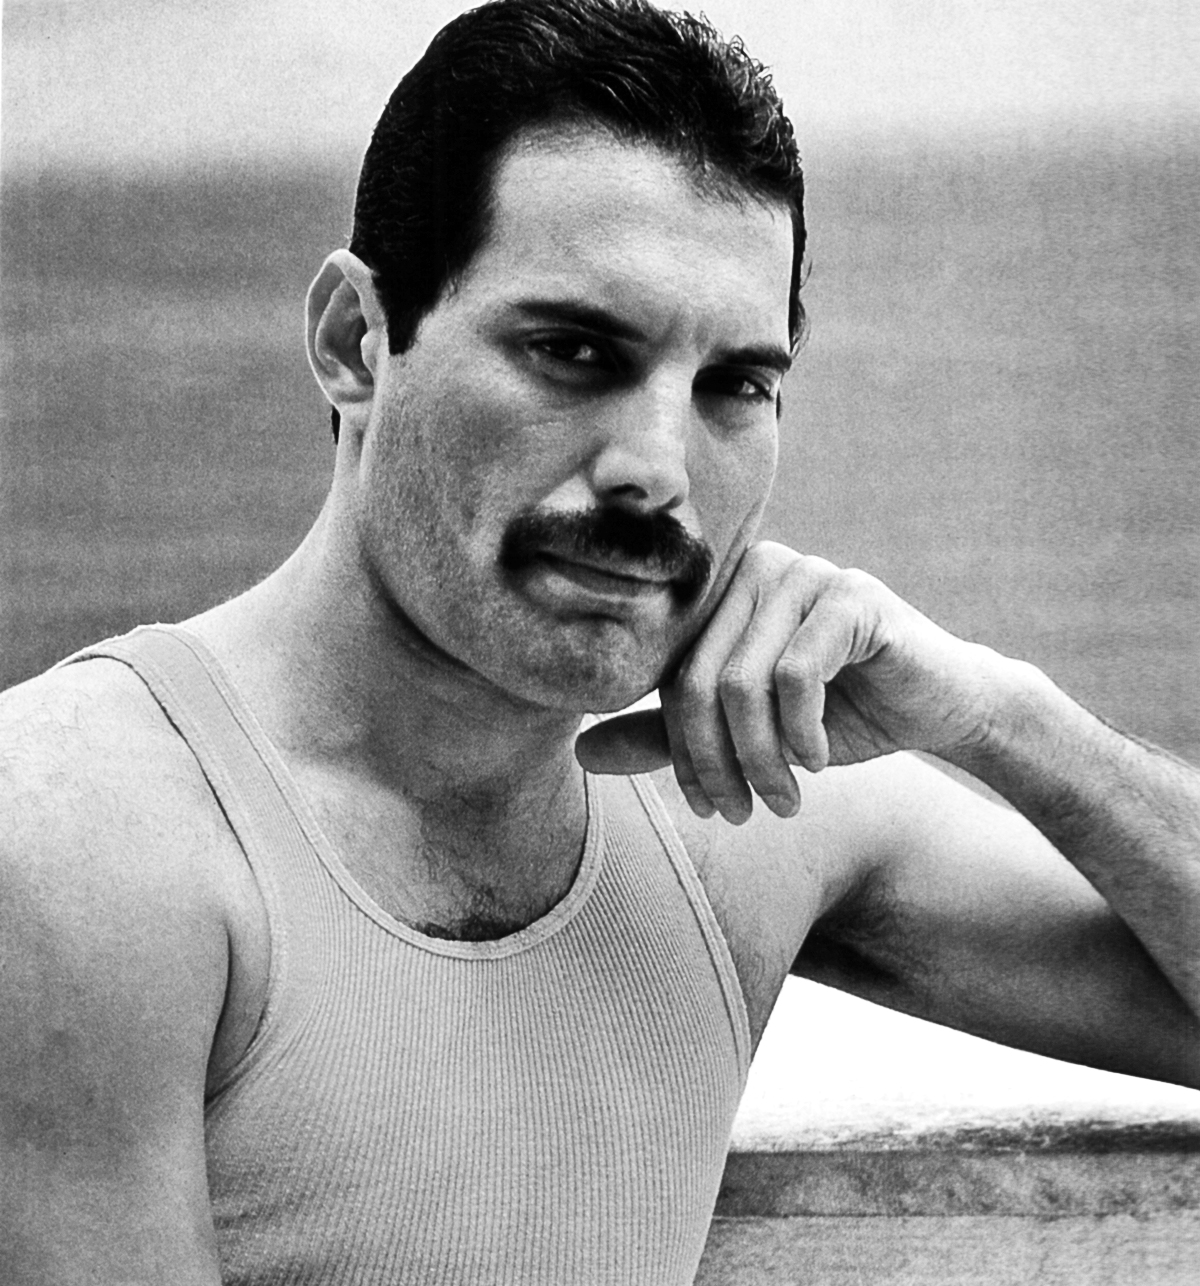 freddie mercury - photo #25